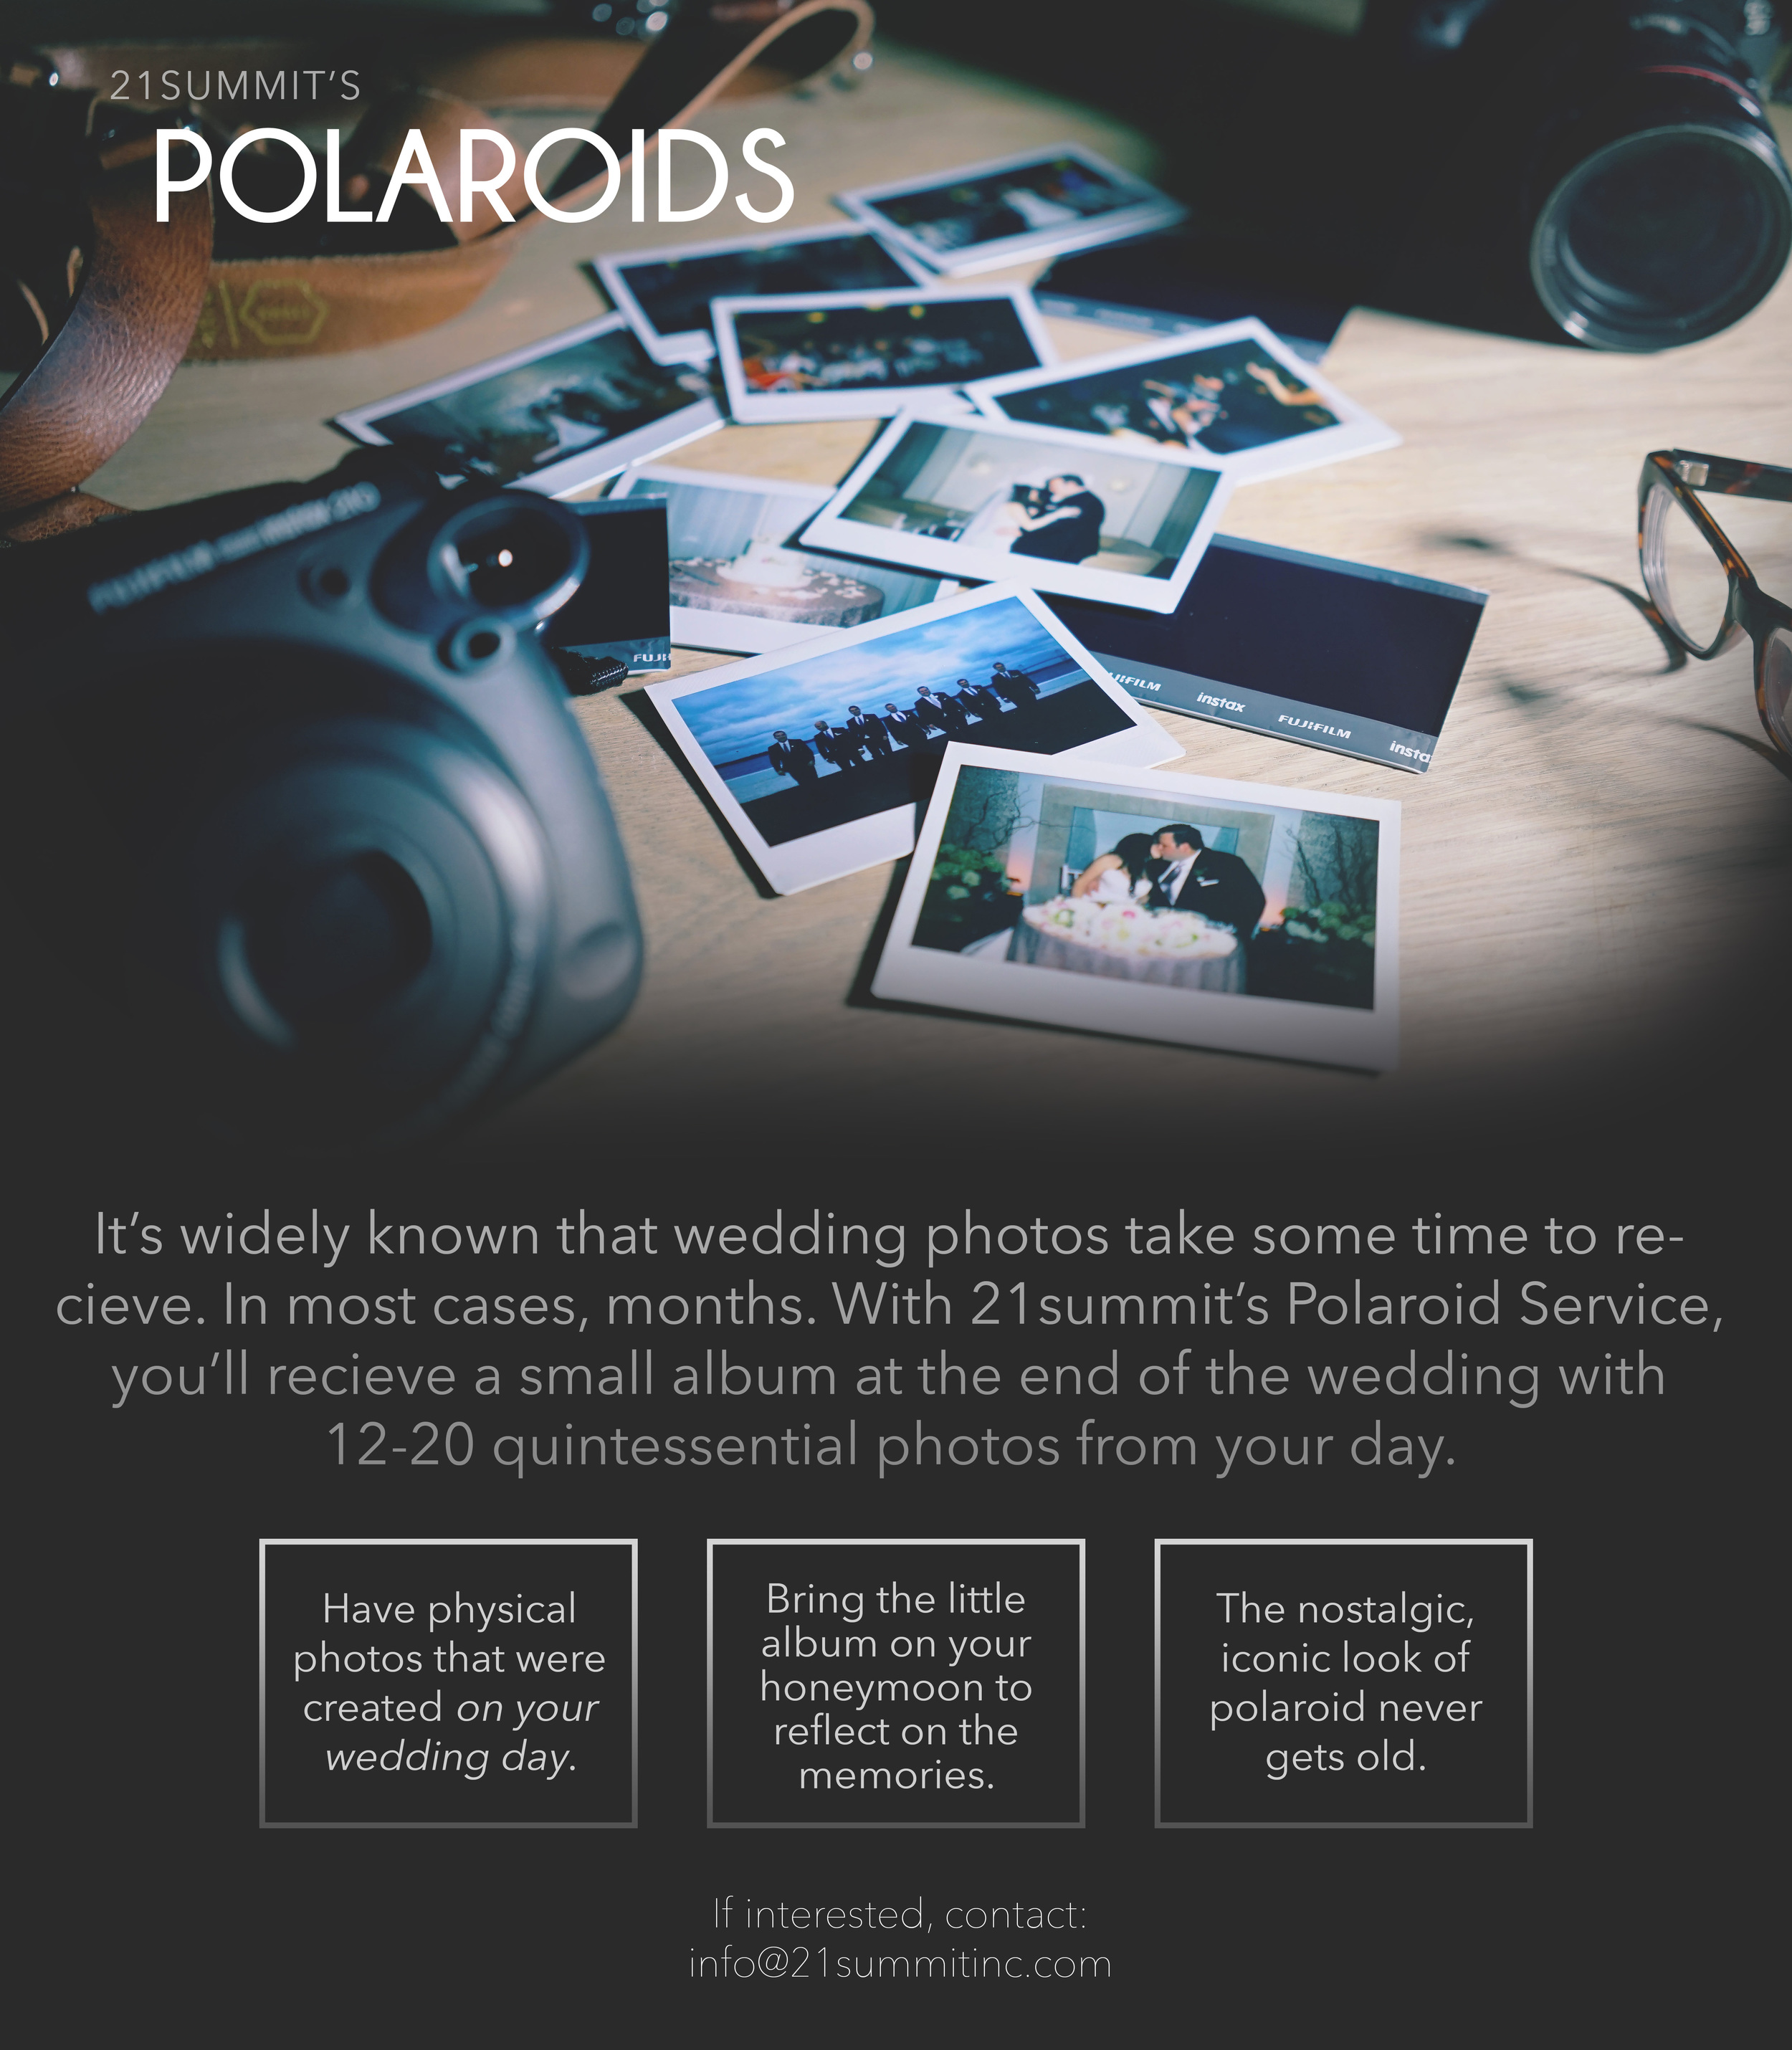 21summit-Polaroids-3.jpg